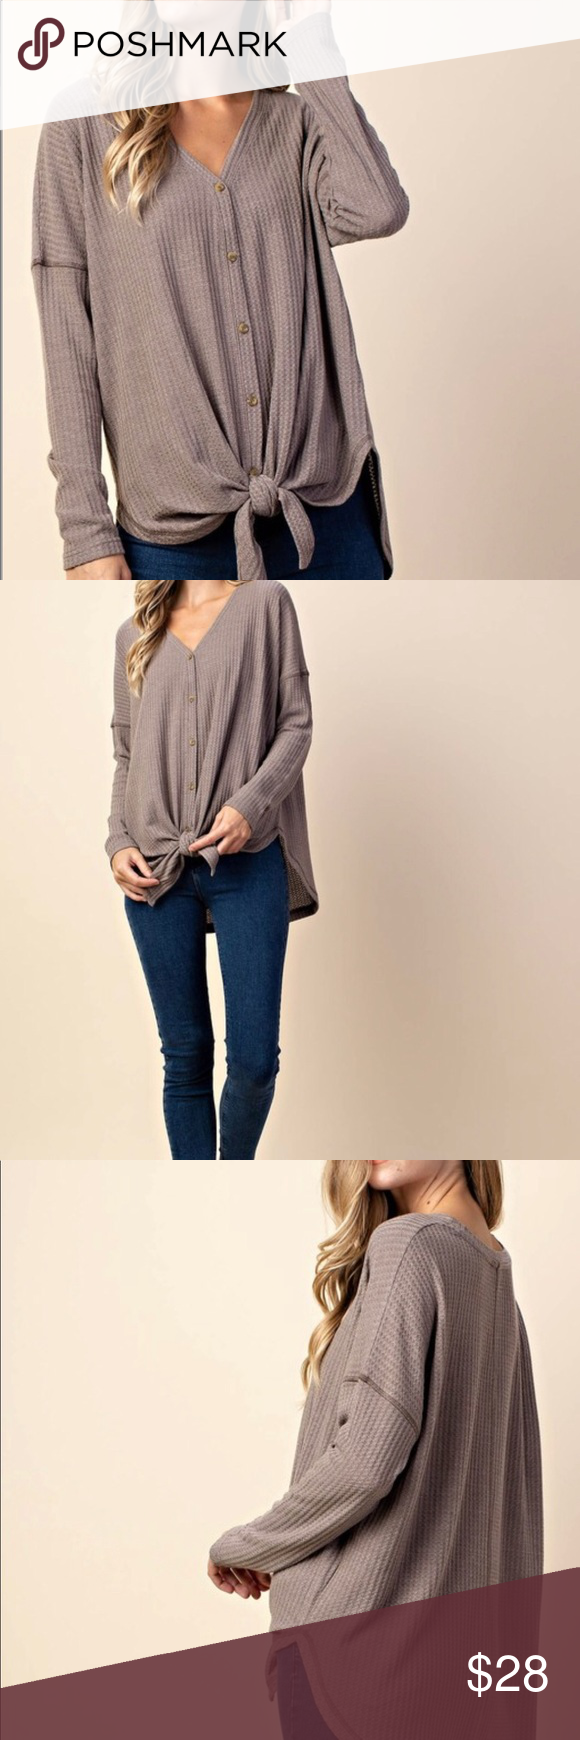 f3064ba7368 Waffle knit button up NWT! Oversized fit. Pair with a criss cross or lace  bralette (check out my listings I have some great options) Tops Button Down  Shirts